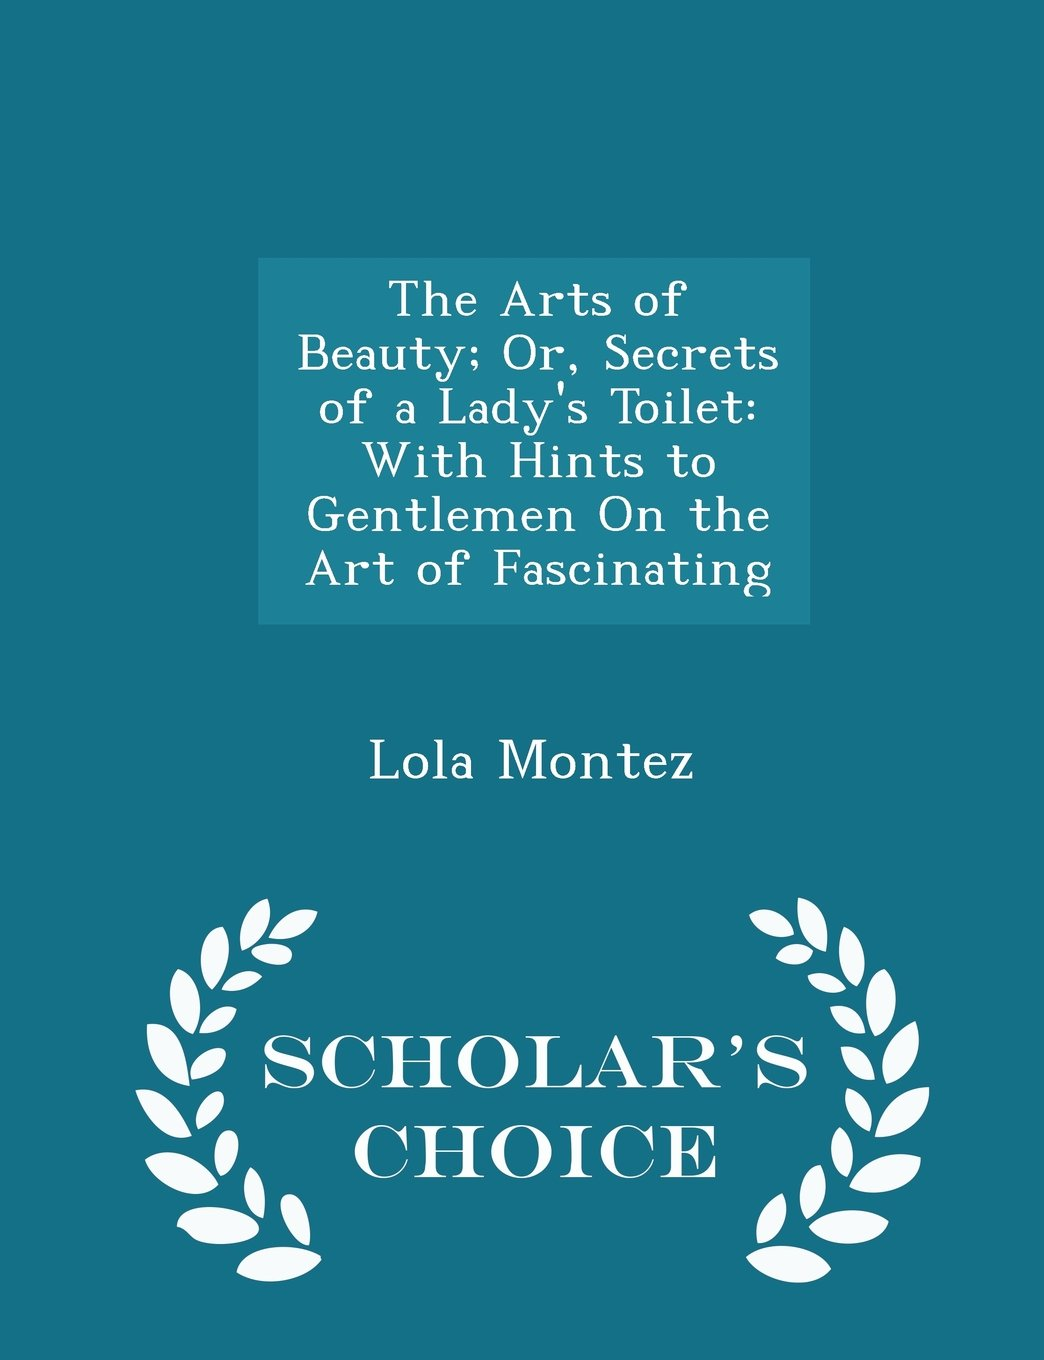 Read Online The Arts of Beauty; Or, Secrets of a Lady's Toilet: With Hints to Gentlemen On the Art of Fascinating - Scholar's Choice Edition pdf